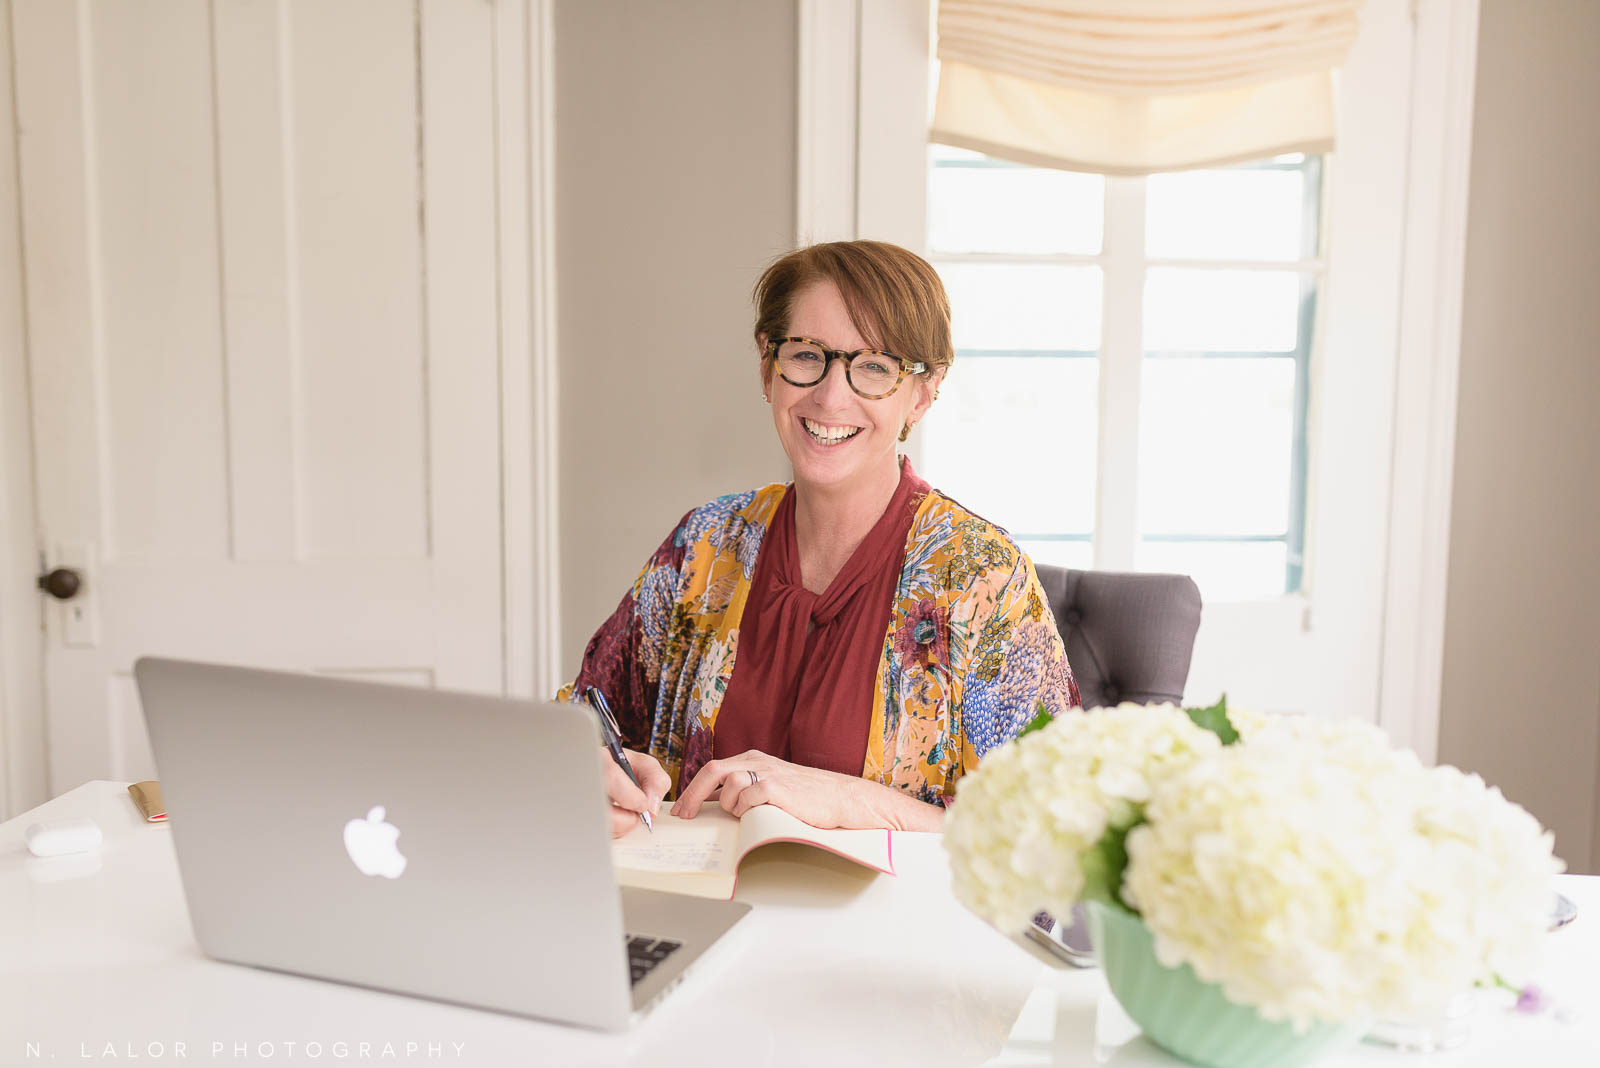 Image of a woman writing in her notebook while working in a home office. Portrait by N. Lalor Photography, Westport, Connecticut.